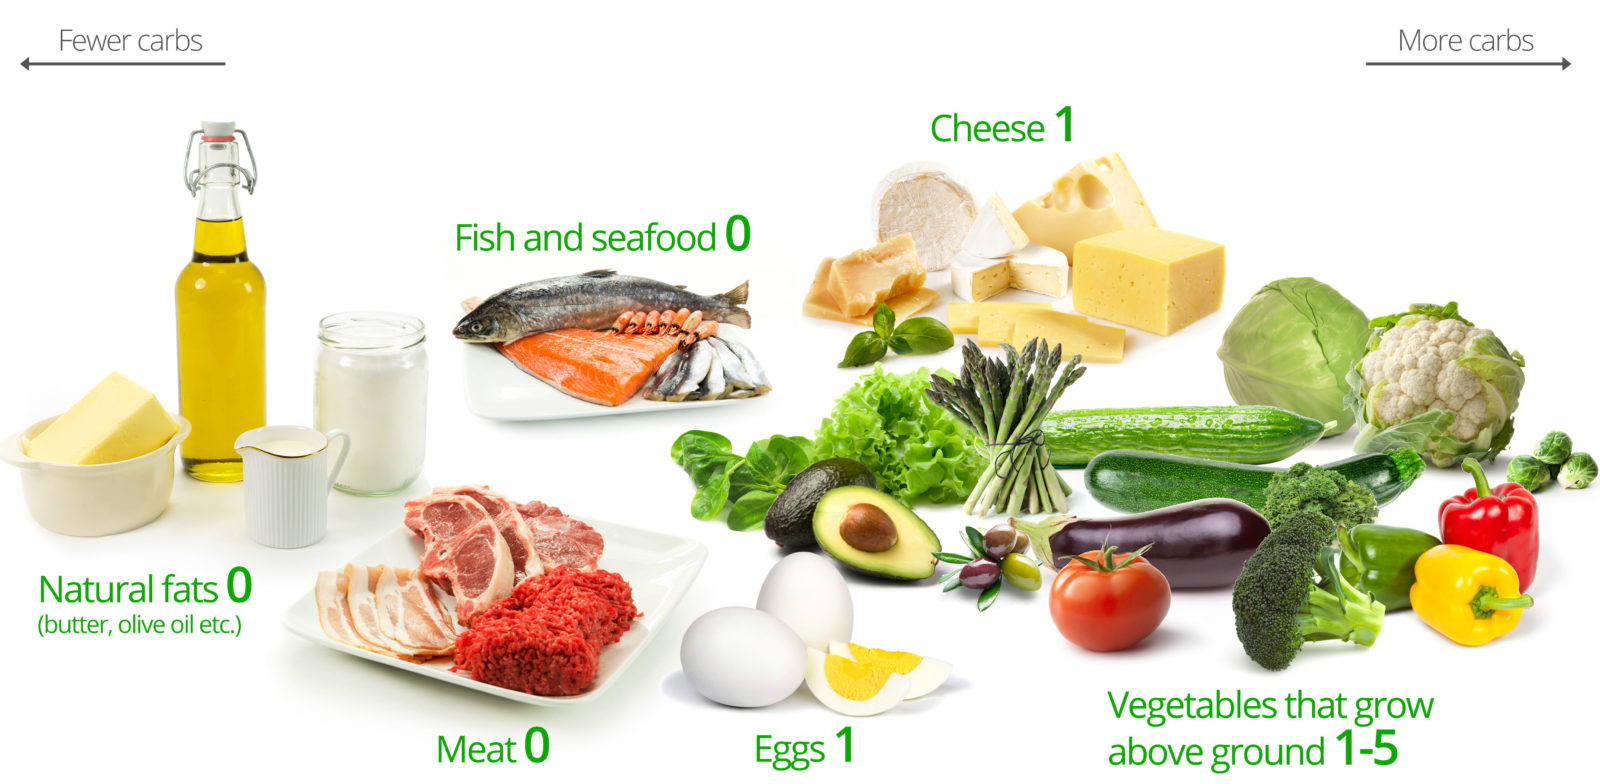 low-carb-guide.jpg